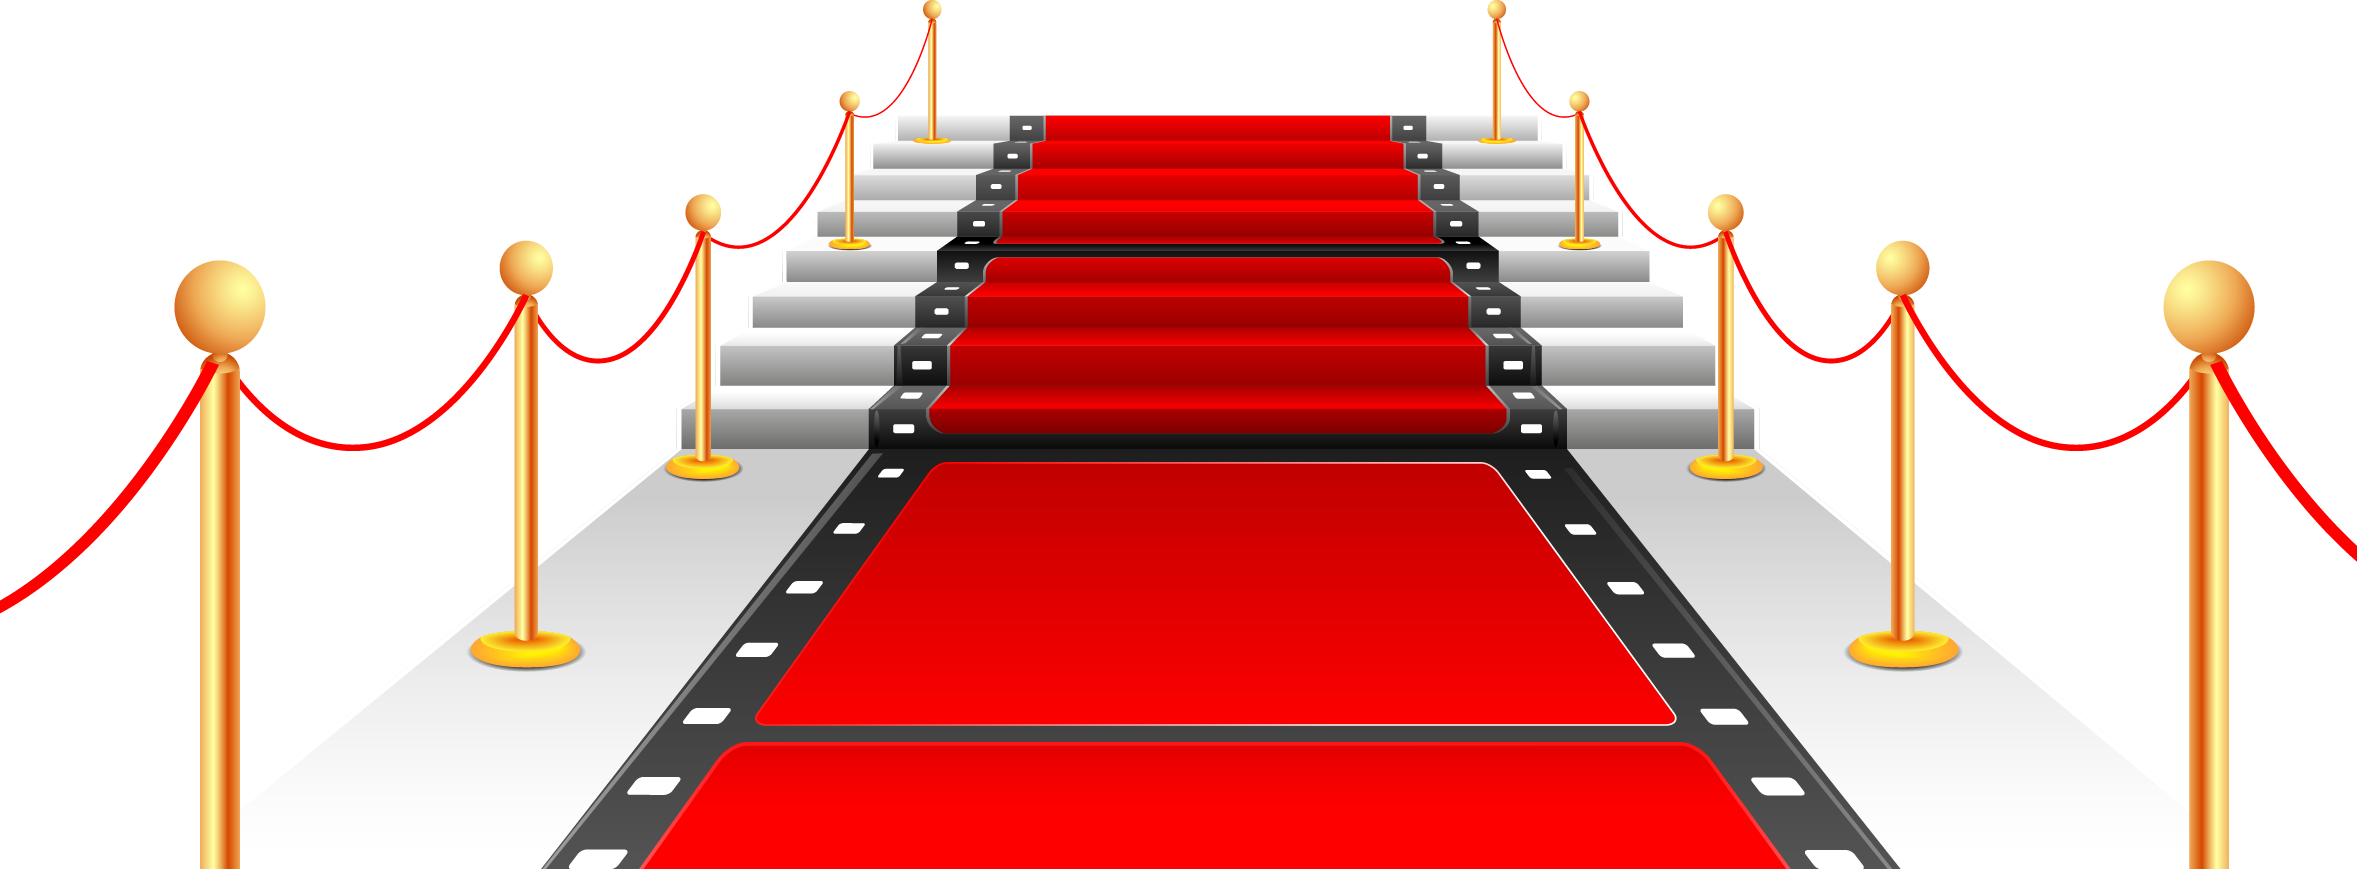 Red Carpet PNG Image